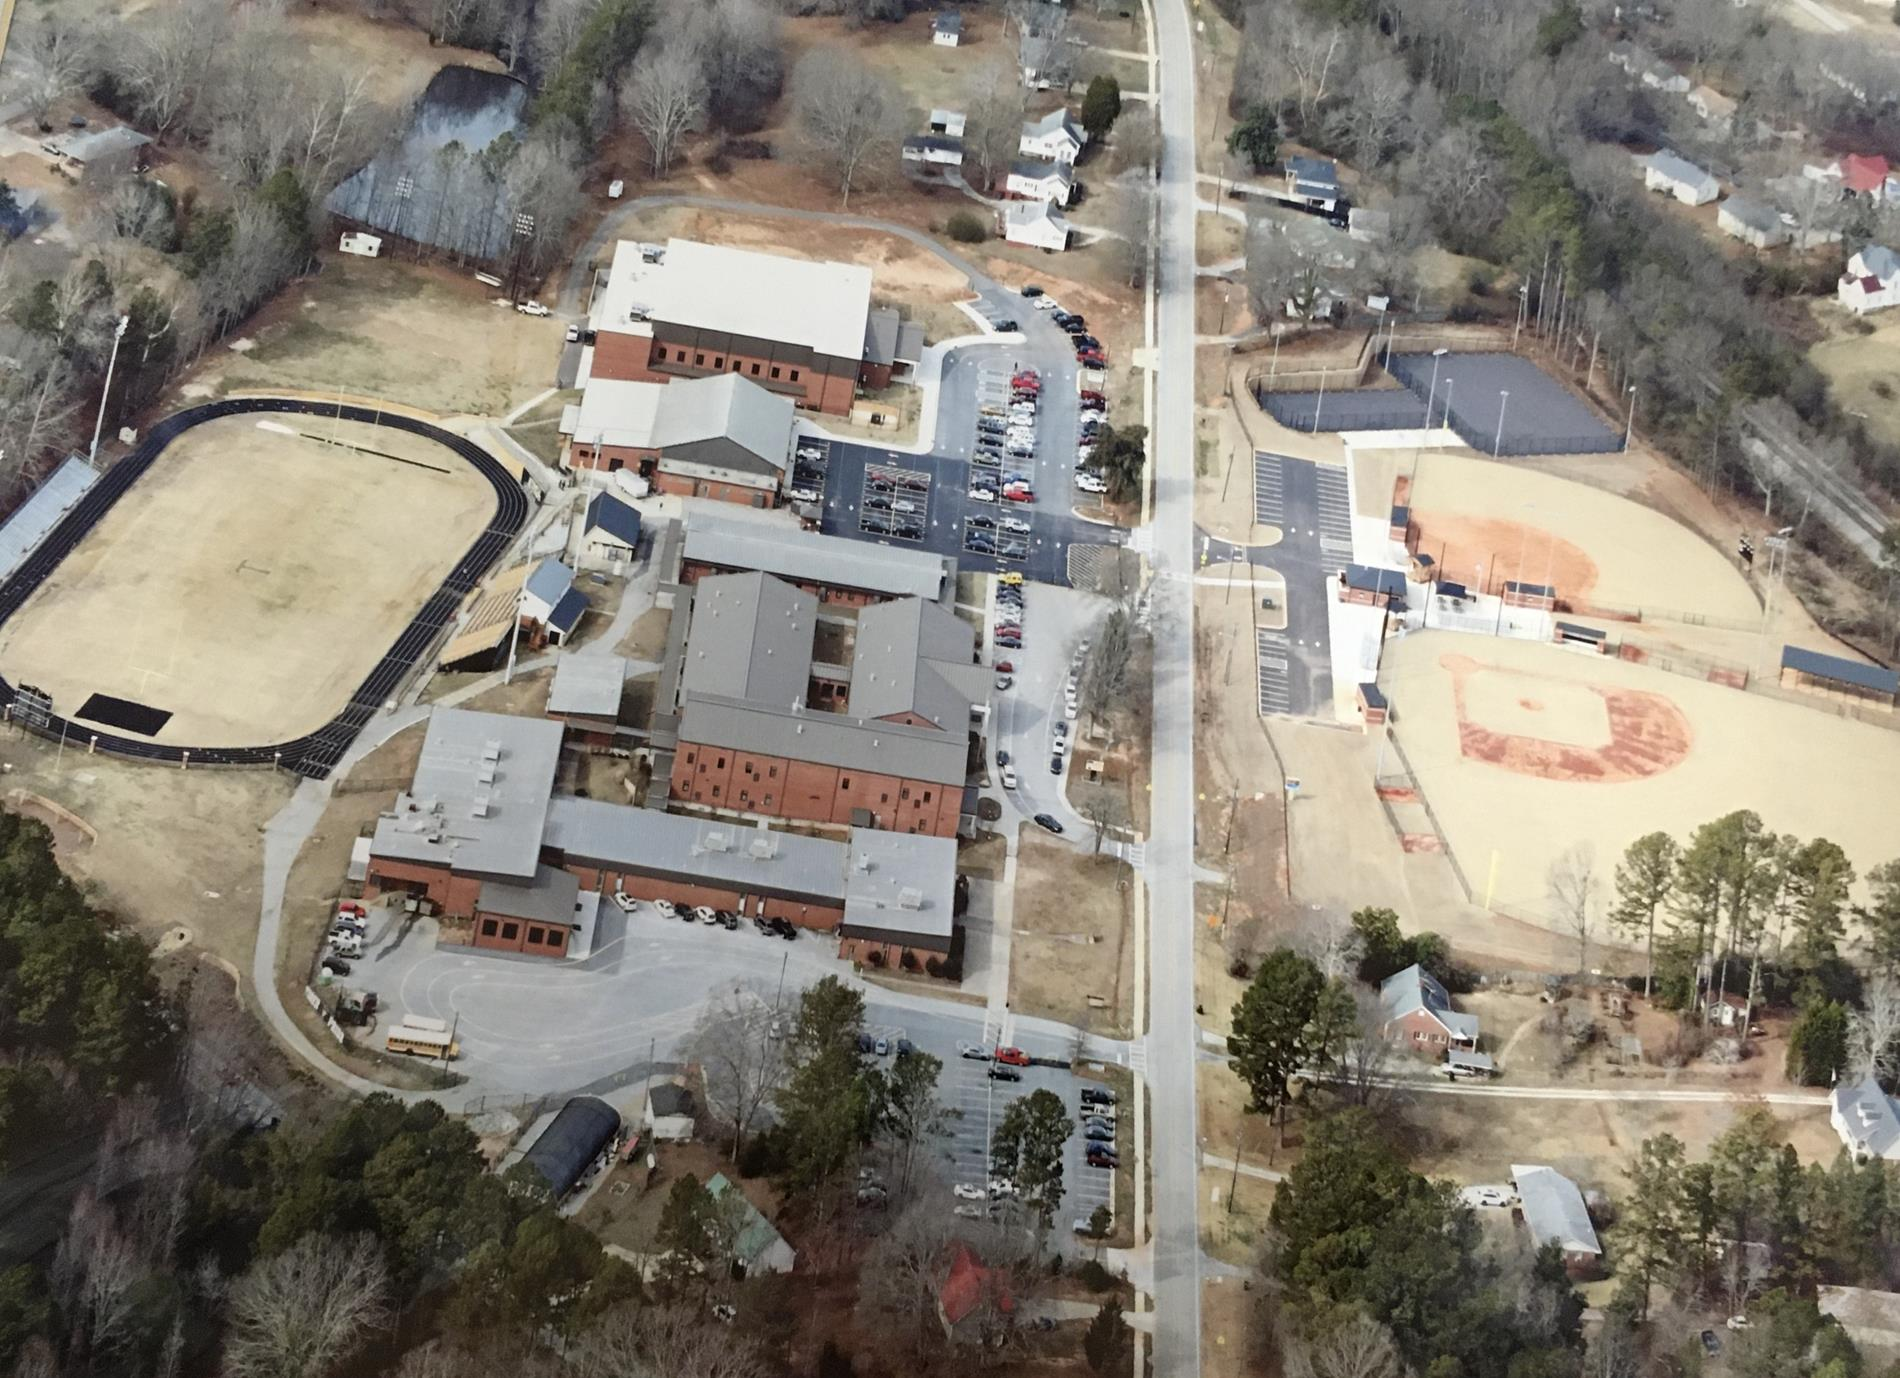 Aerial view of current campus as of 2019 (taken 2015)